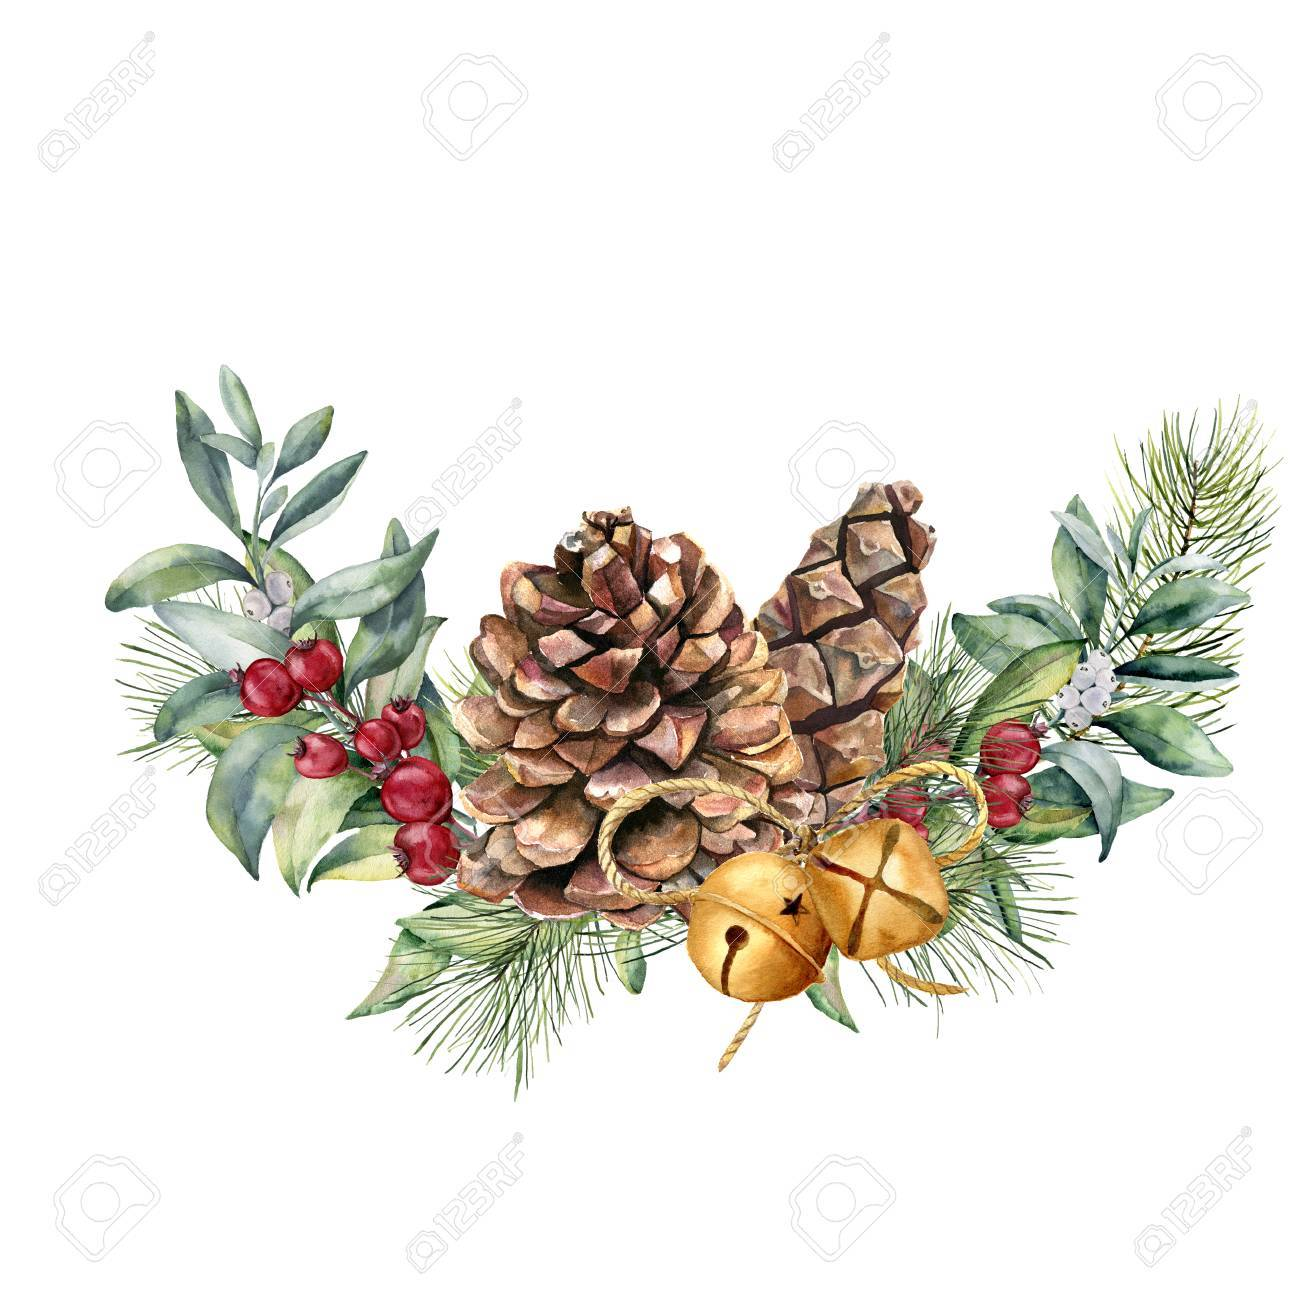 Watercolor winter floral composition. Hand painted snowberry and fir branches, red berries with leaves, pine cone, bells isolated on white background. Christmas illustration for design, print. - 89093301